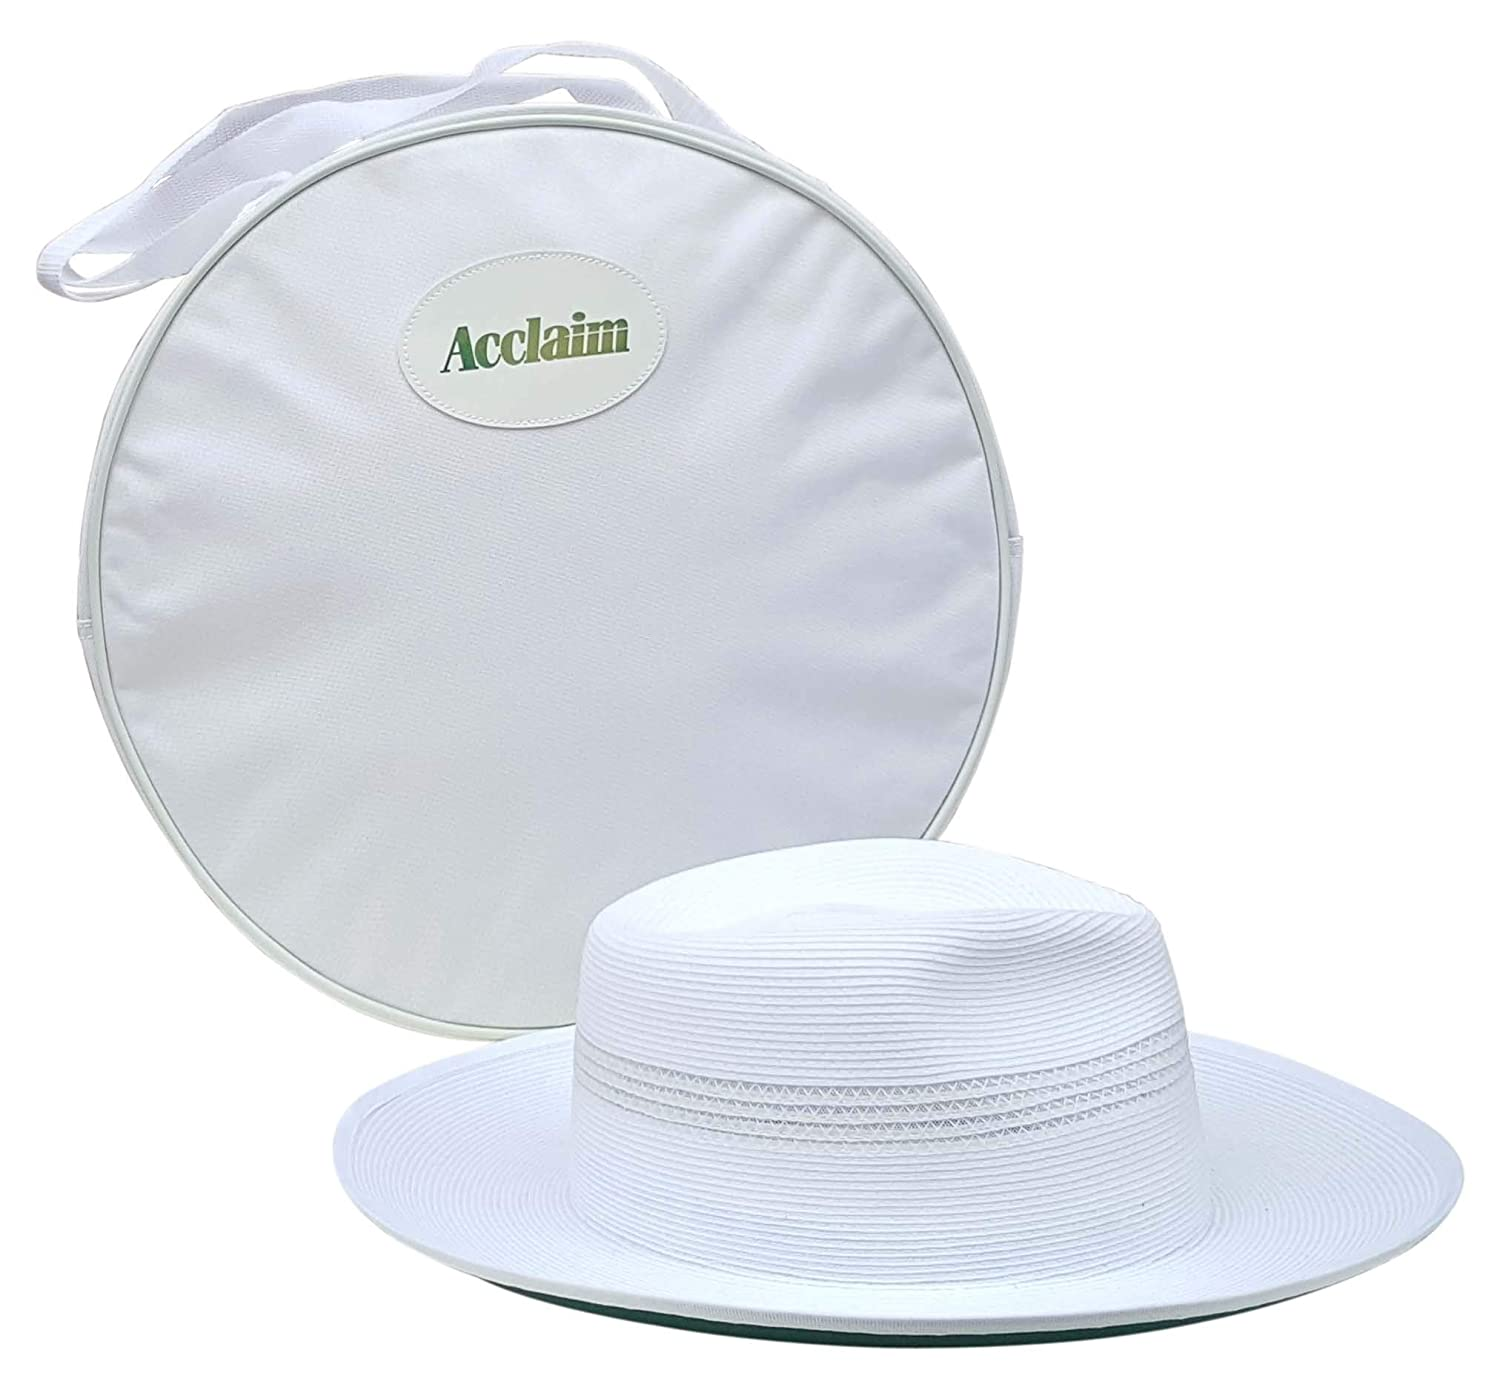 Acclaim Kalgoorlie International Cricket Umpires Hat With The Stay Put Headband & White Hat Carrying Bag